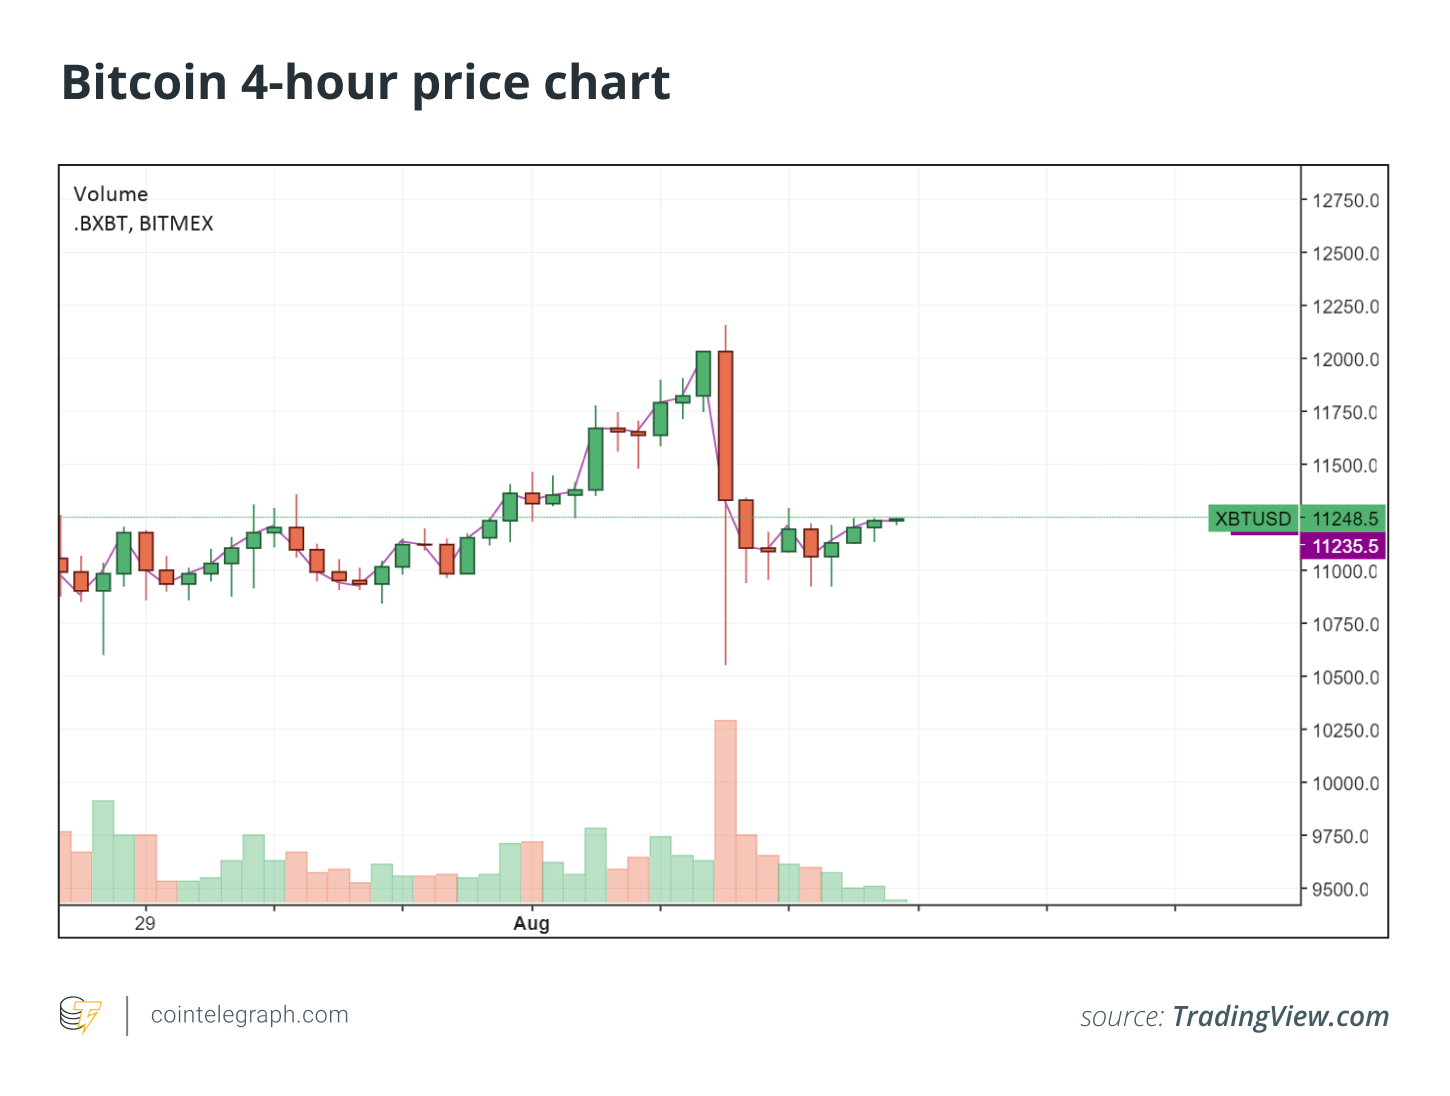 The 4-hour price chart of Bitcoin